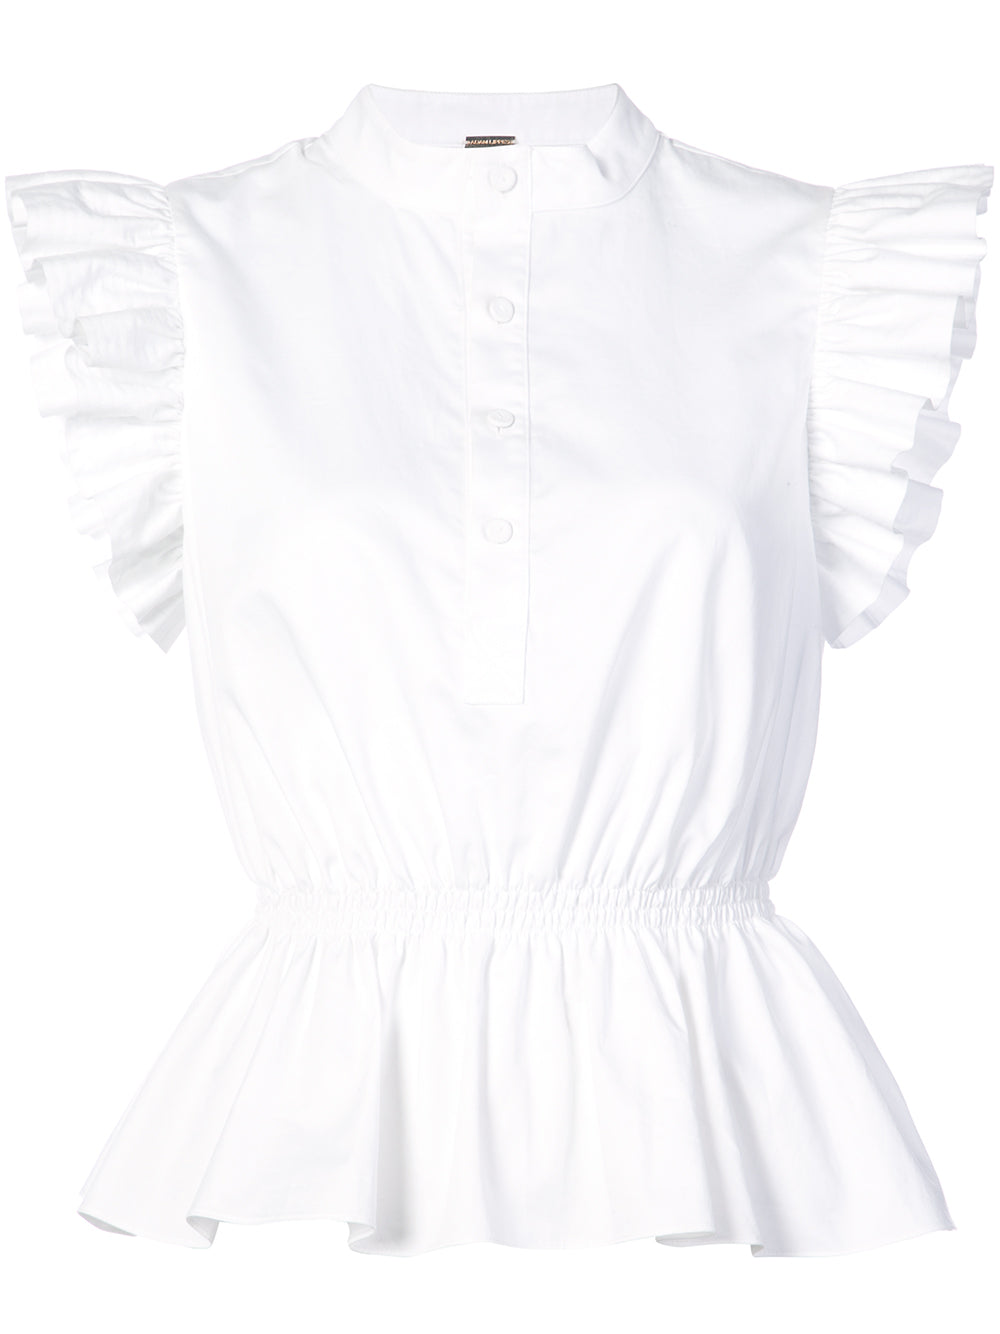 COTTON POPLIN PEPLUM TOP WITH RUFFLE SLEEVE